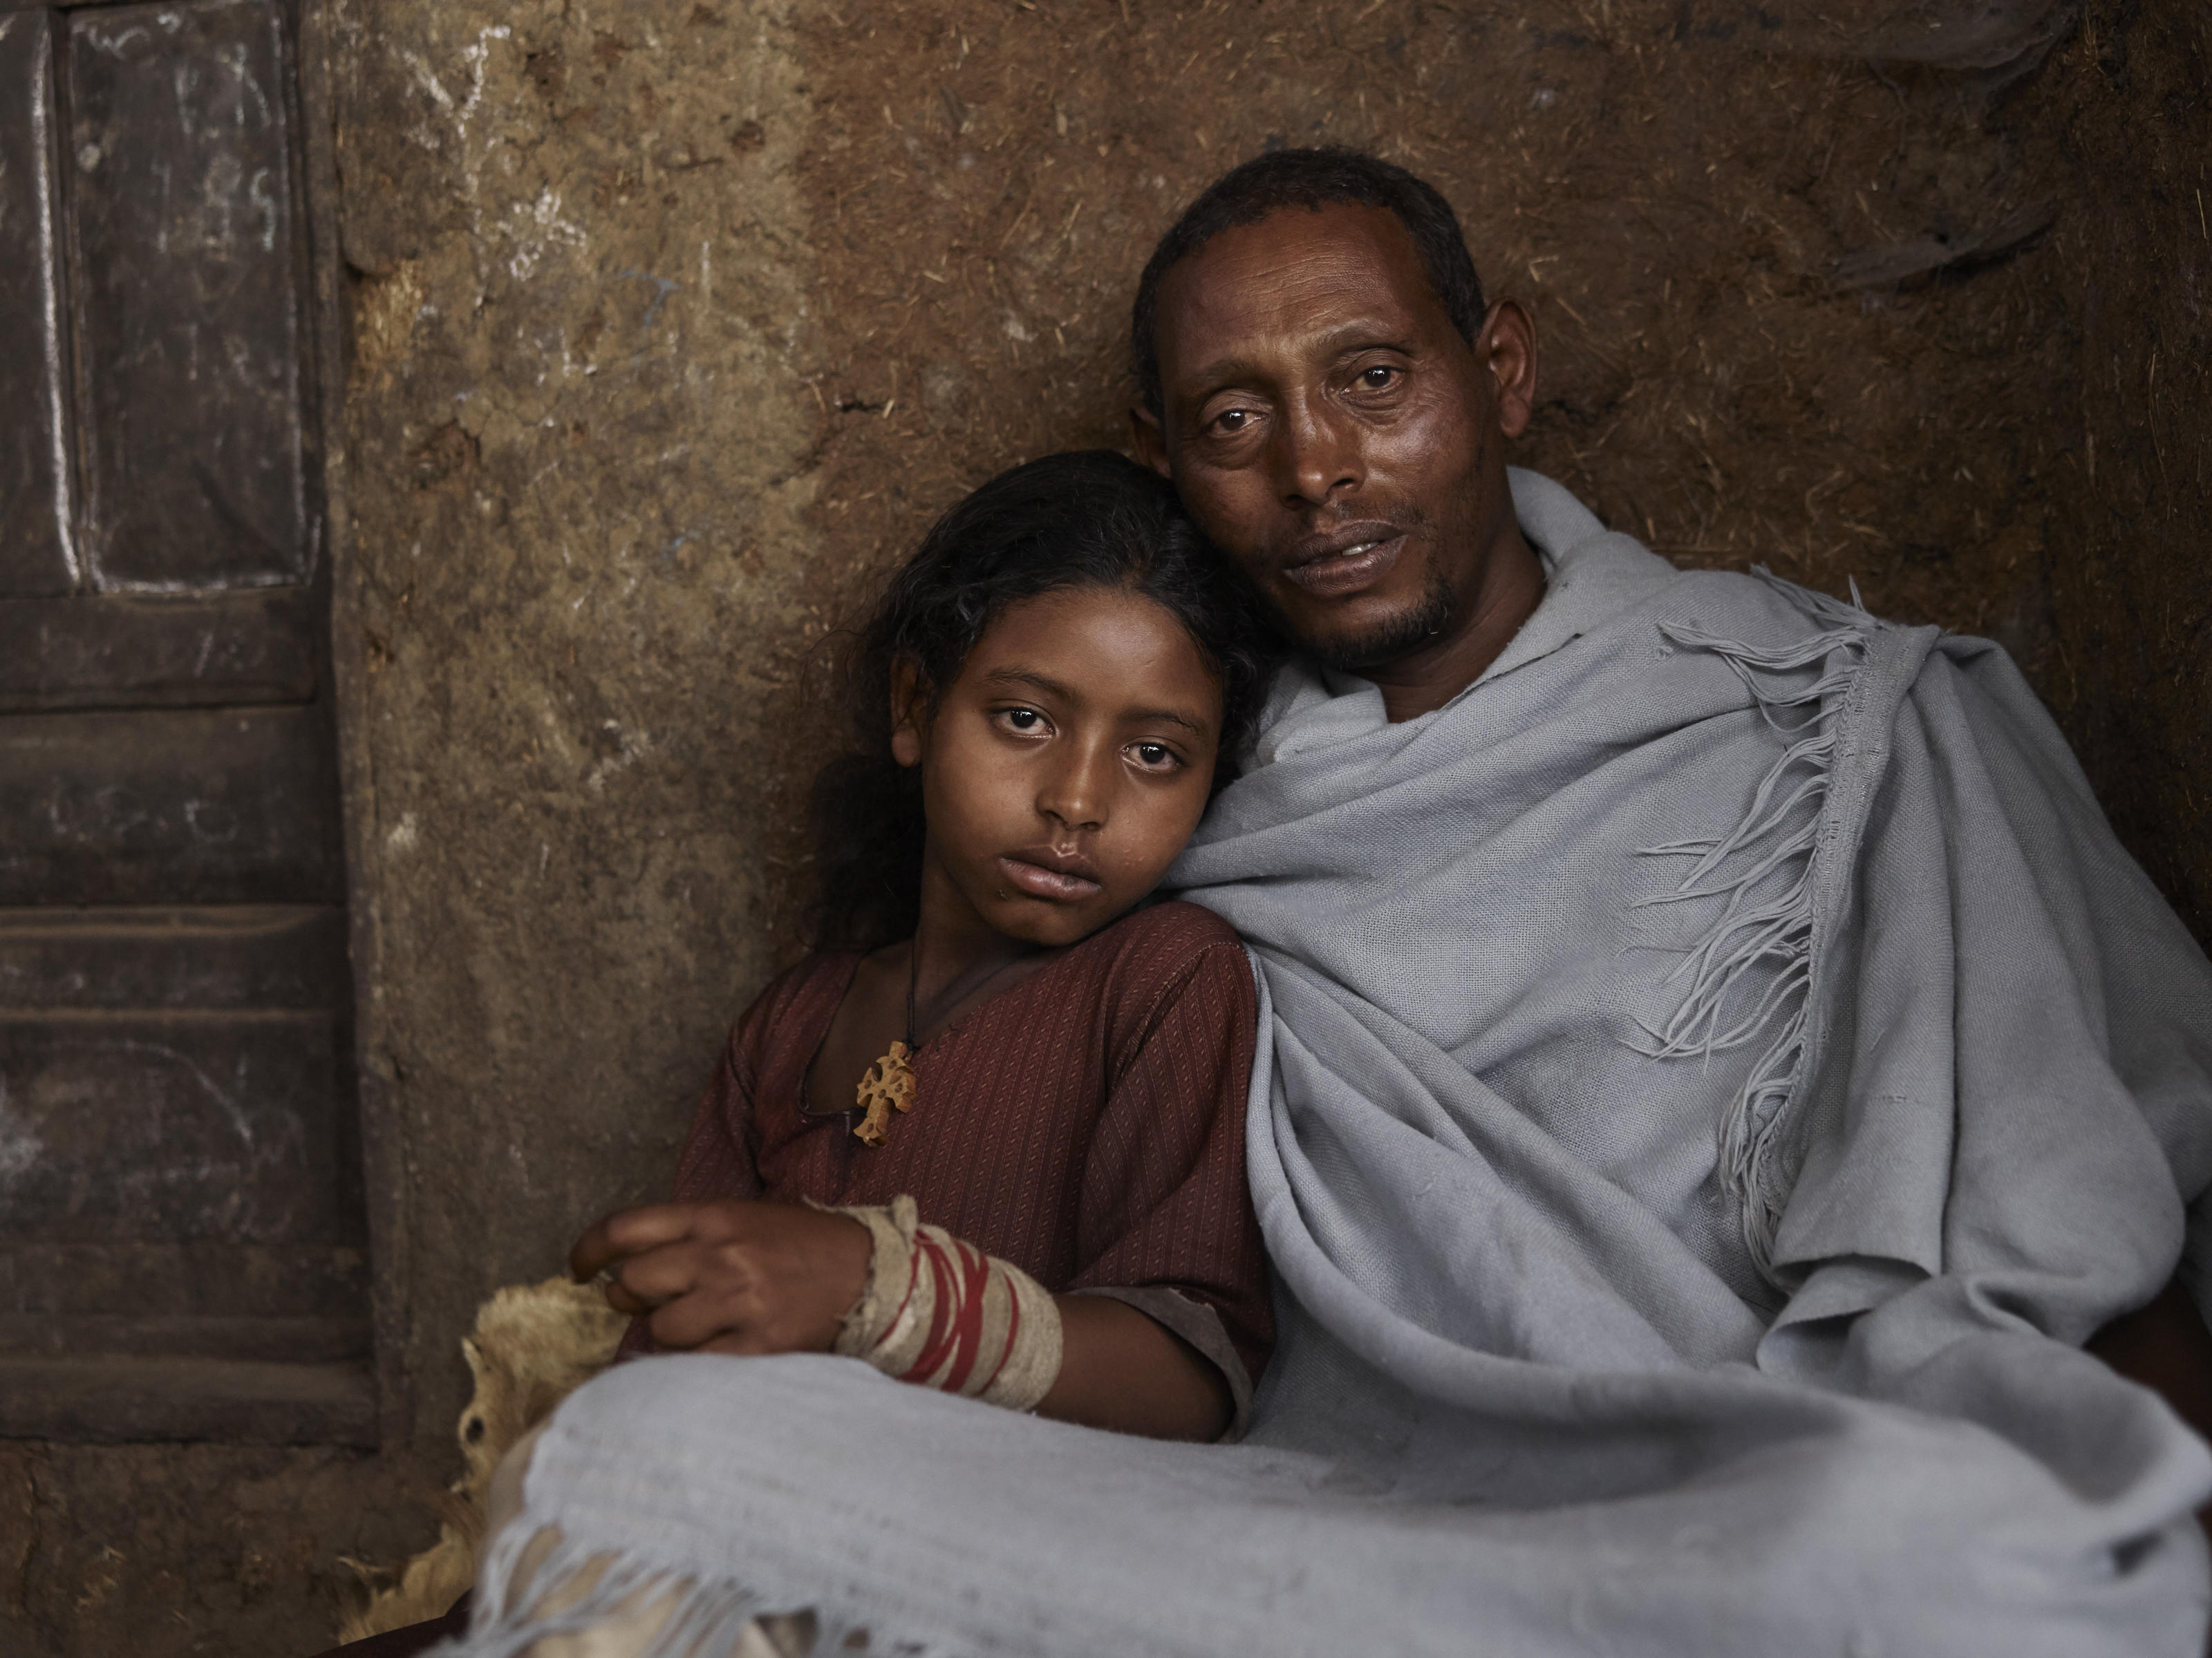 Animut with his daughter Aynadis in Frat, Ethiopia.